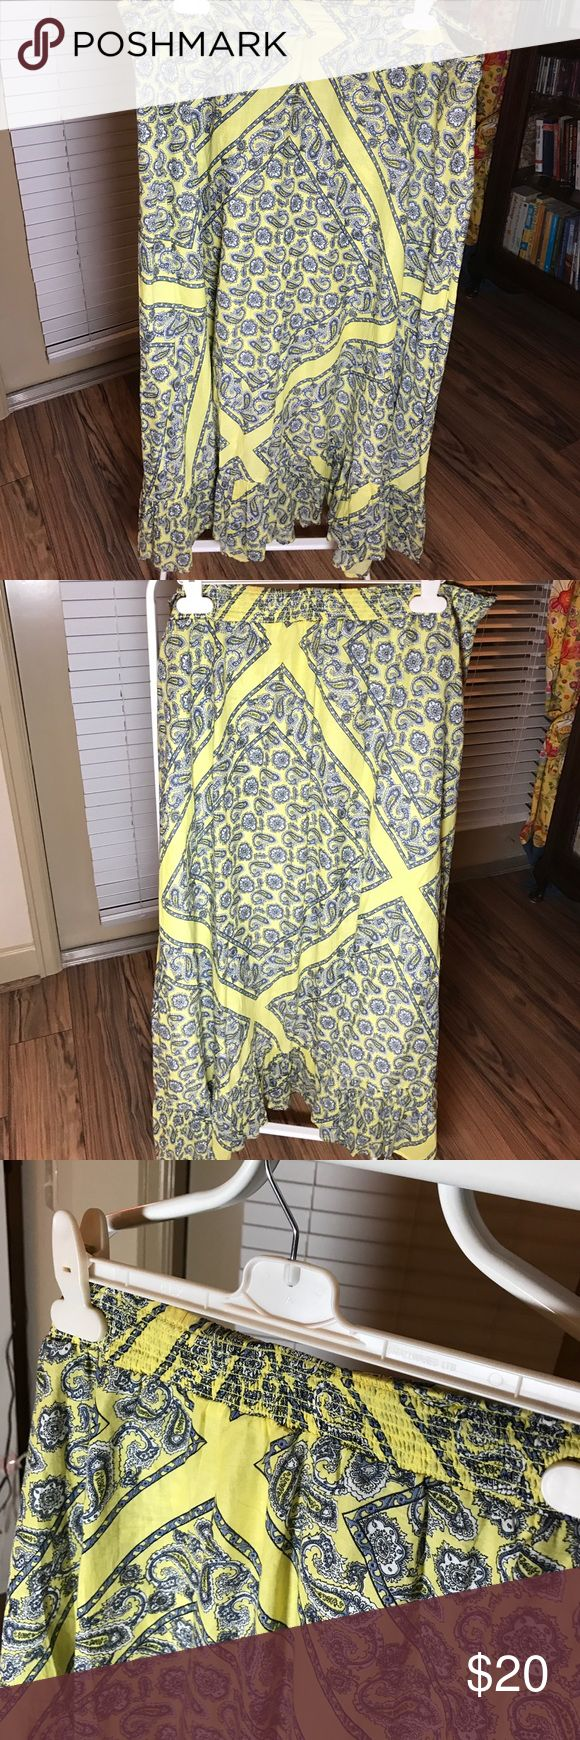 """Long flowing yellow cowgirl/gypsy summer skirt Great with cowboy boots or sandals. Elasticated to back of waist. Bought in UK Monsoon, size XL which will fit a US 18-22.  Length is approx 39"""". Paisley pattern in black and grey. Monsoon Skirts Maxi"""